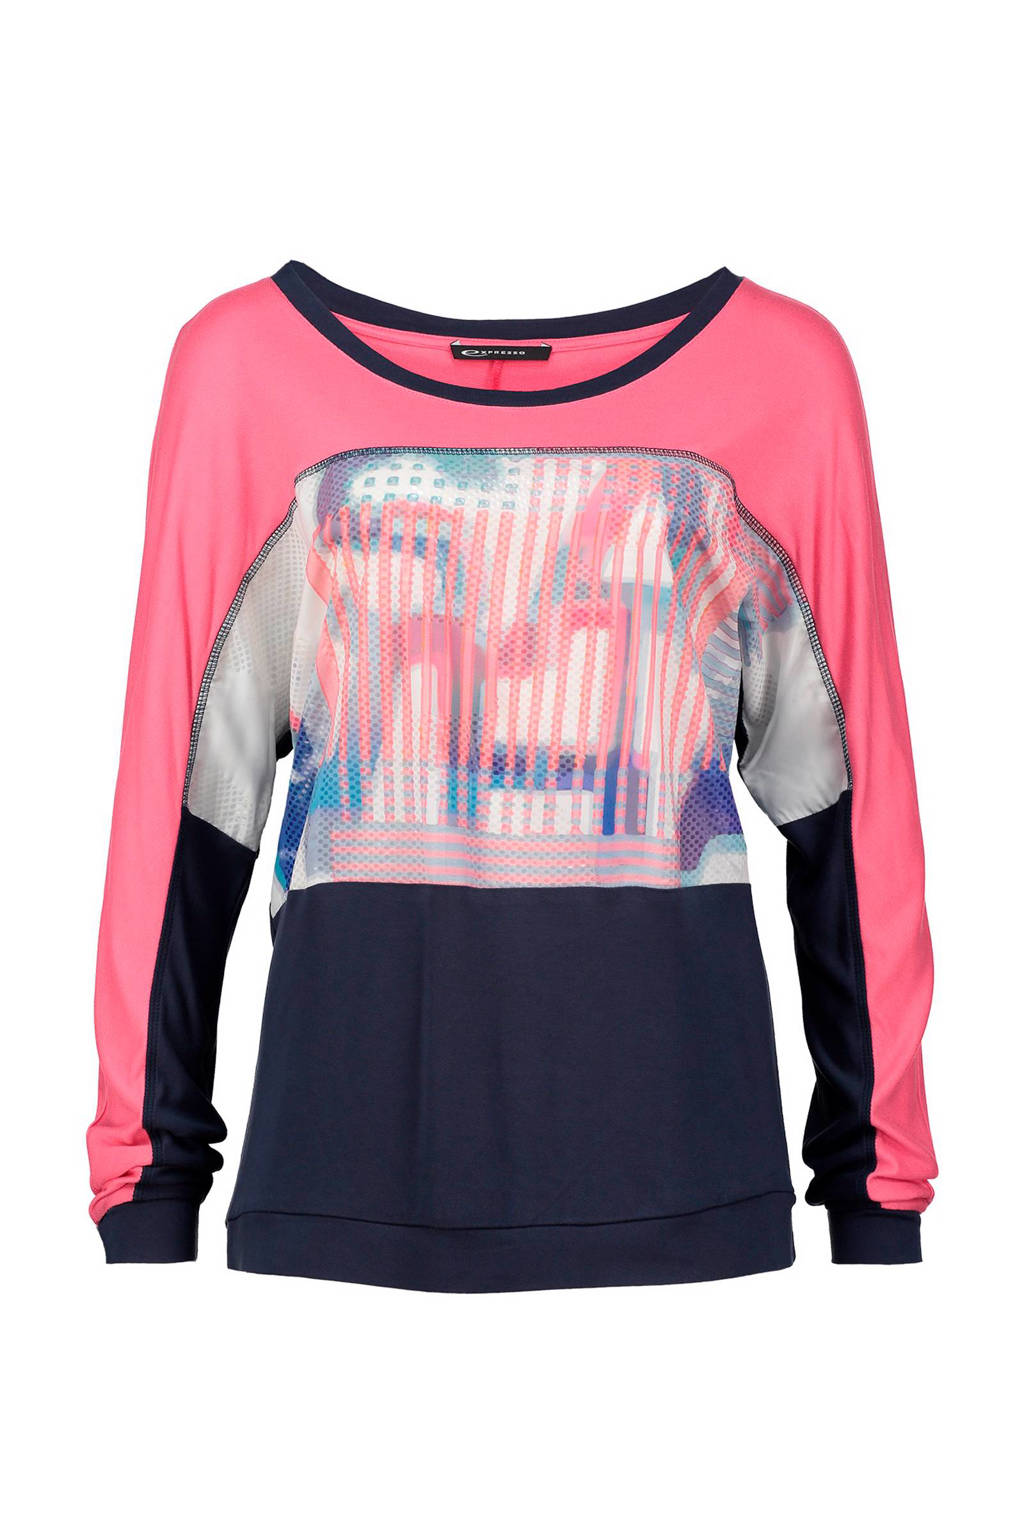 Expresso top Carianne, Donkerblauw/roze